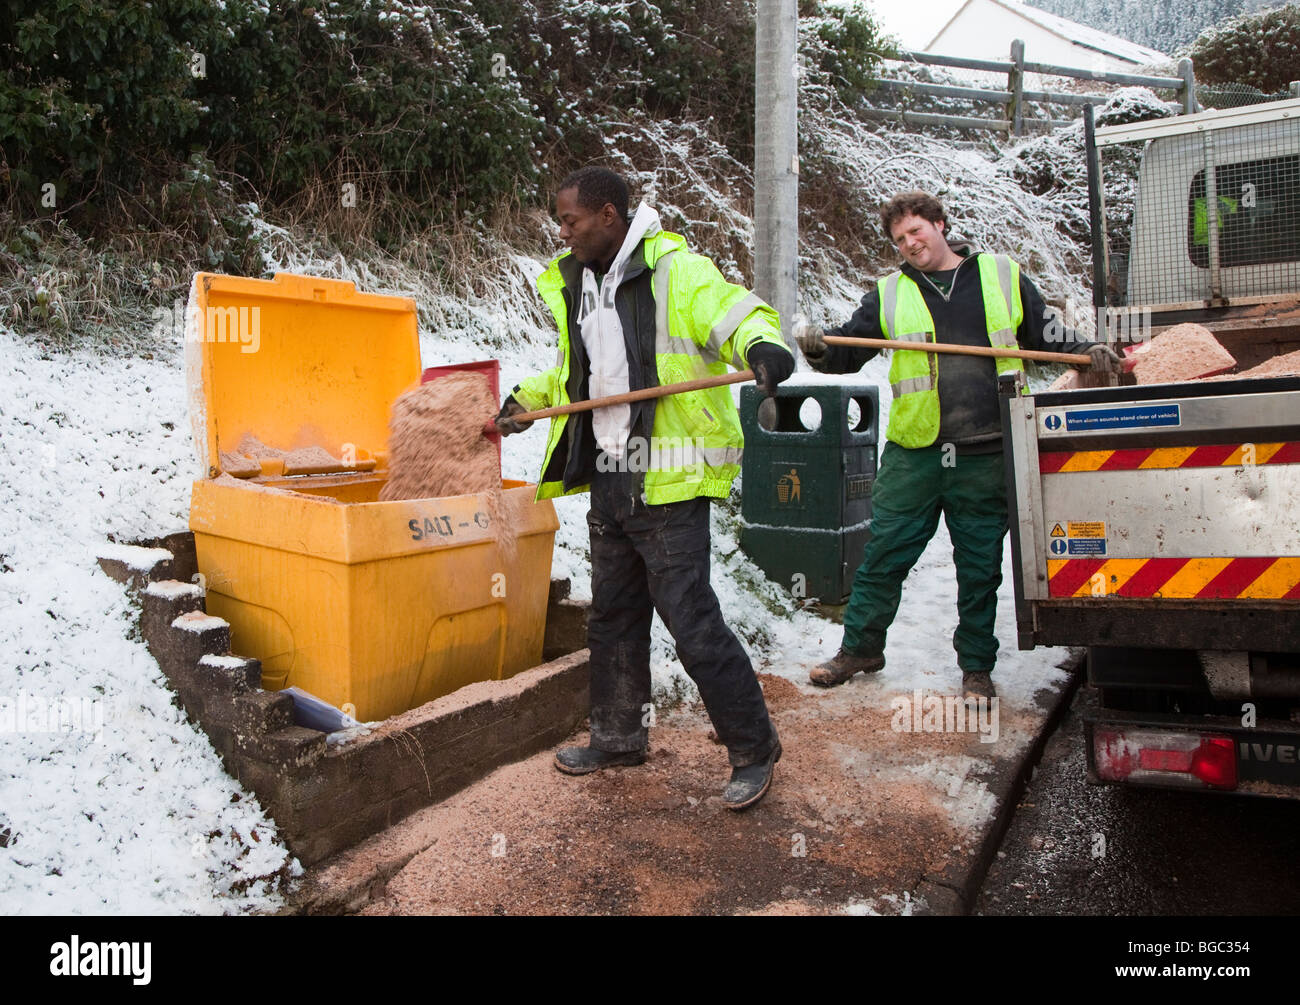 Council workmen filling salt bin from lorry containing grit and salt for roads in village Wales UK - Stock Image